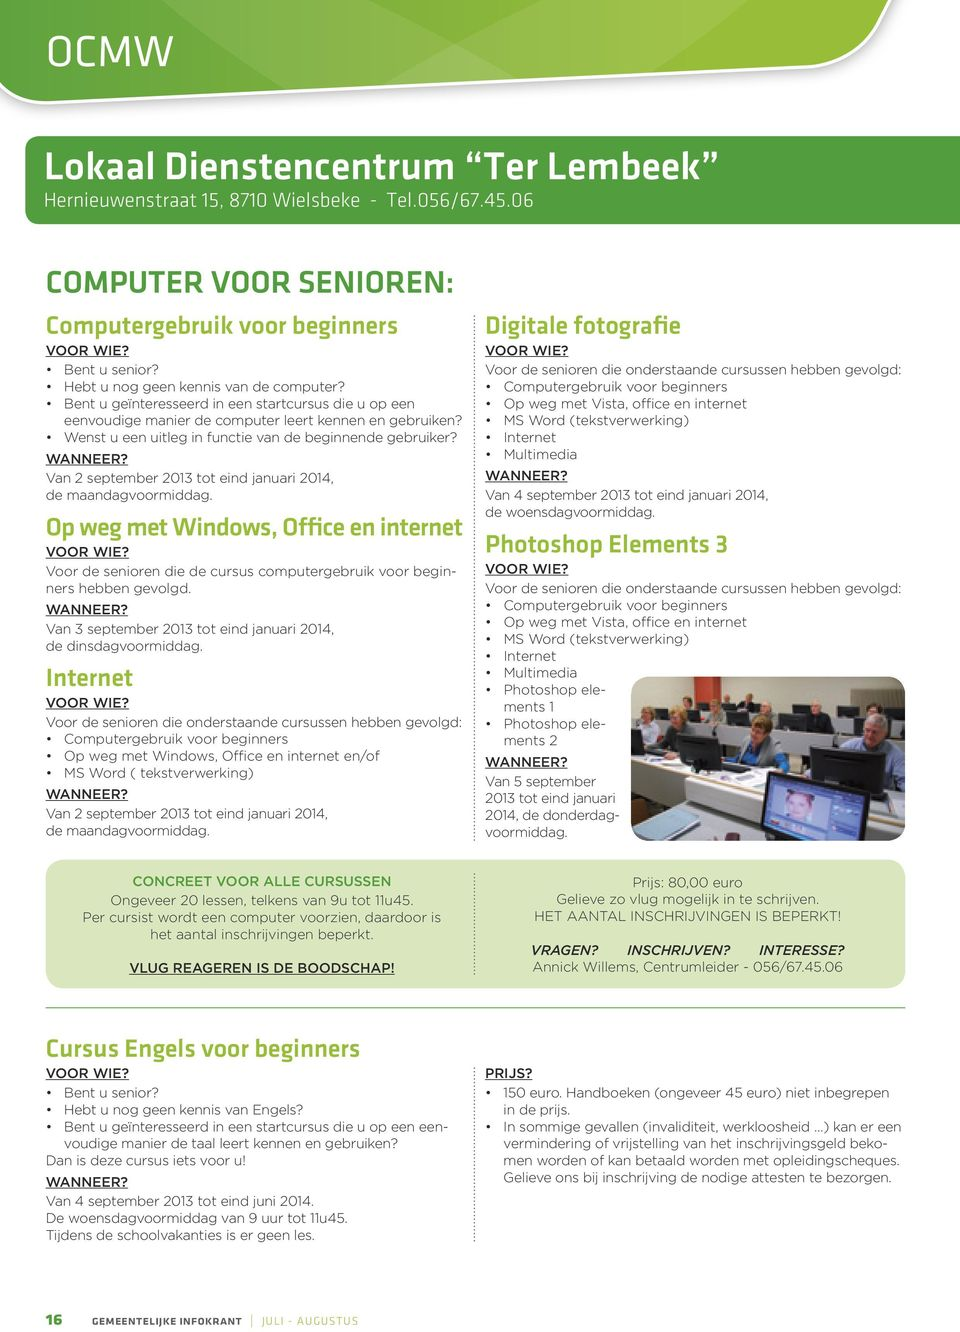 Wenst u een uitleg in functie van de beginnende gebruiker? WANNEER? Van 2 september 2013 tot eind januari 2014, de maandagvoormiddag. Op weg met Windows, Office en internet VOOR WIE?